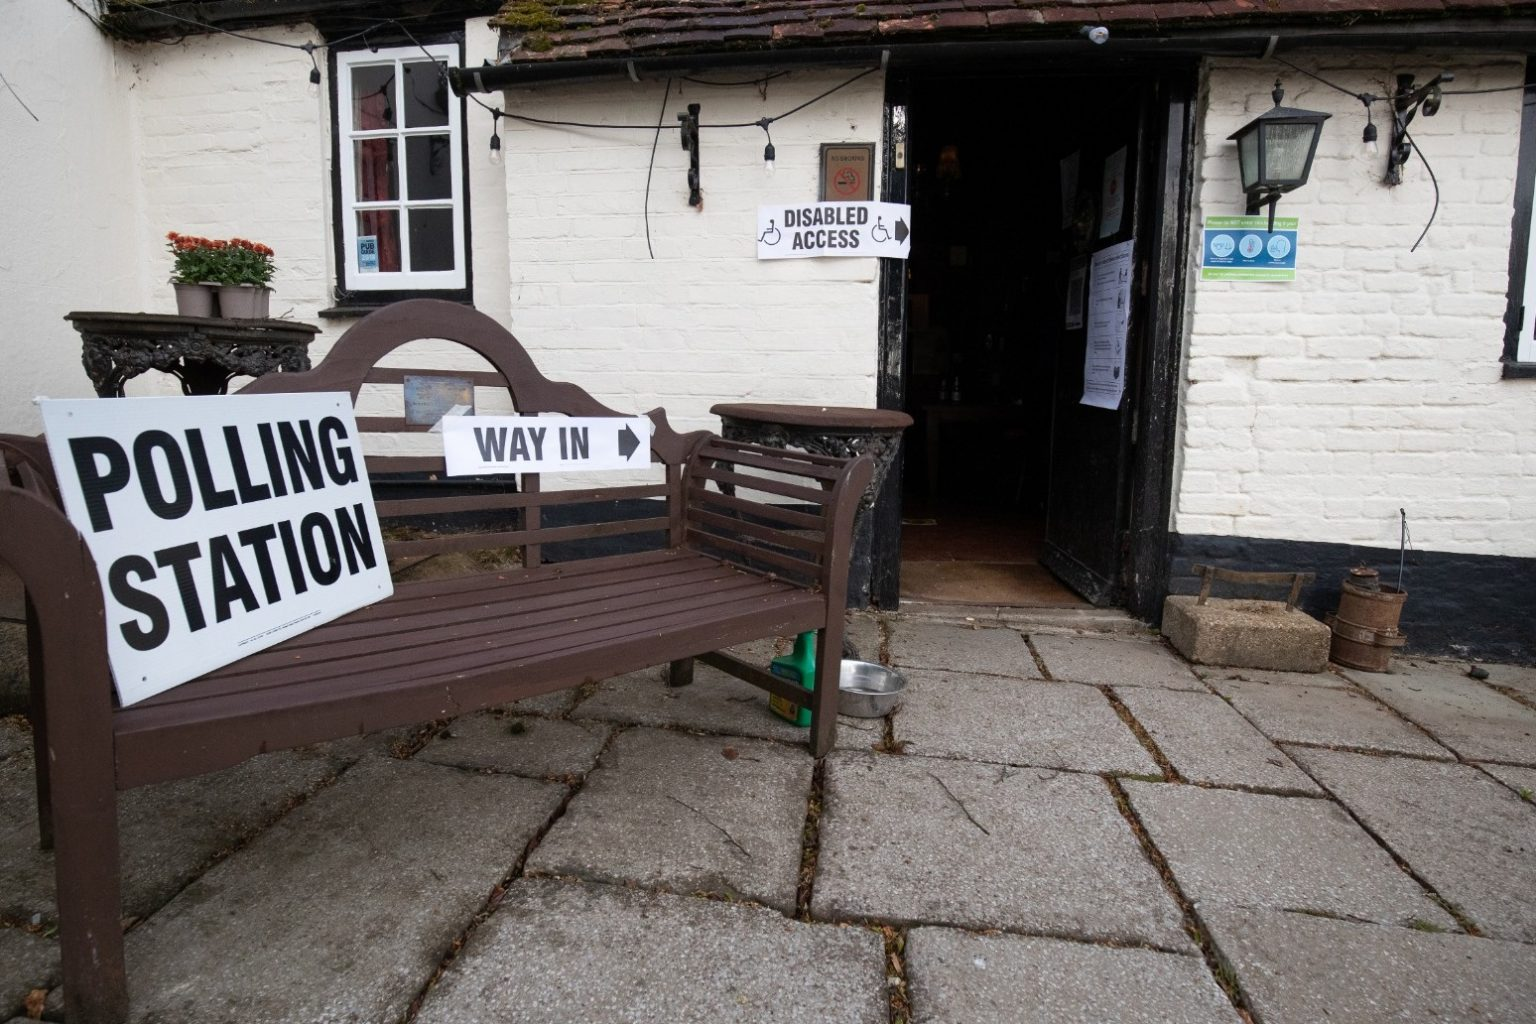 polling station - photo #34